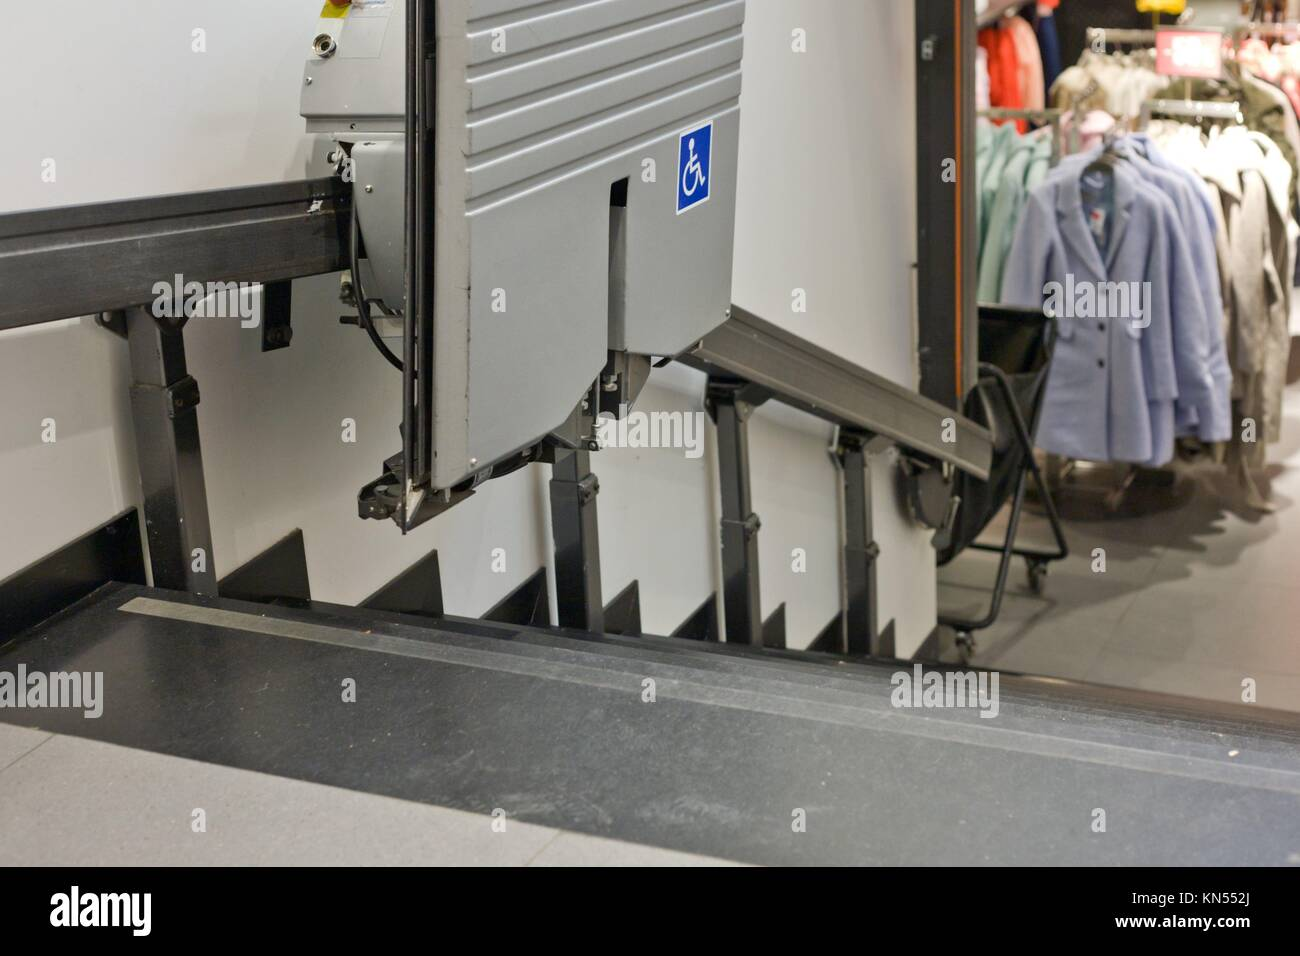 Going up stairs home stock photos going up stairs home for 2 story wheelchair lift